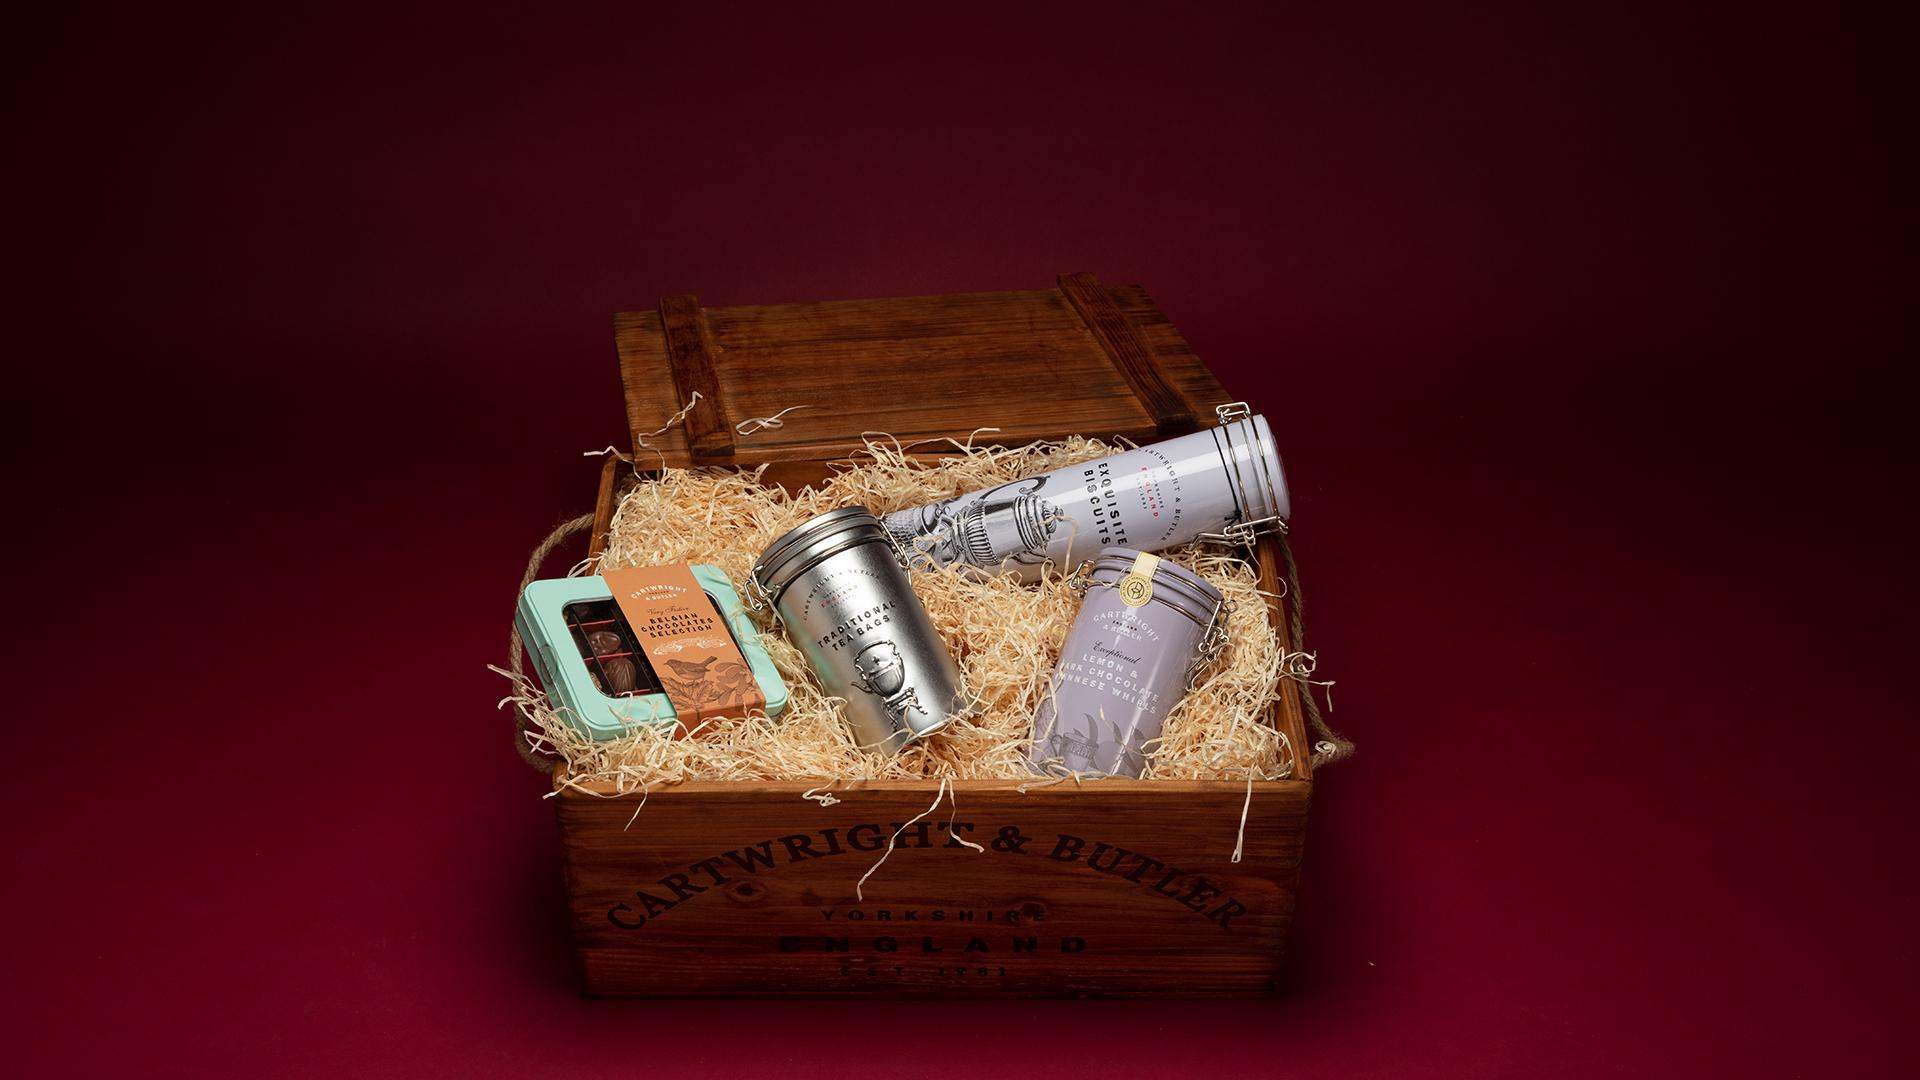 Christmas Hampers 2019: The Swaledale Luxury Christmas Wooden Crate Hamper, £125